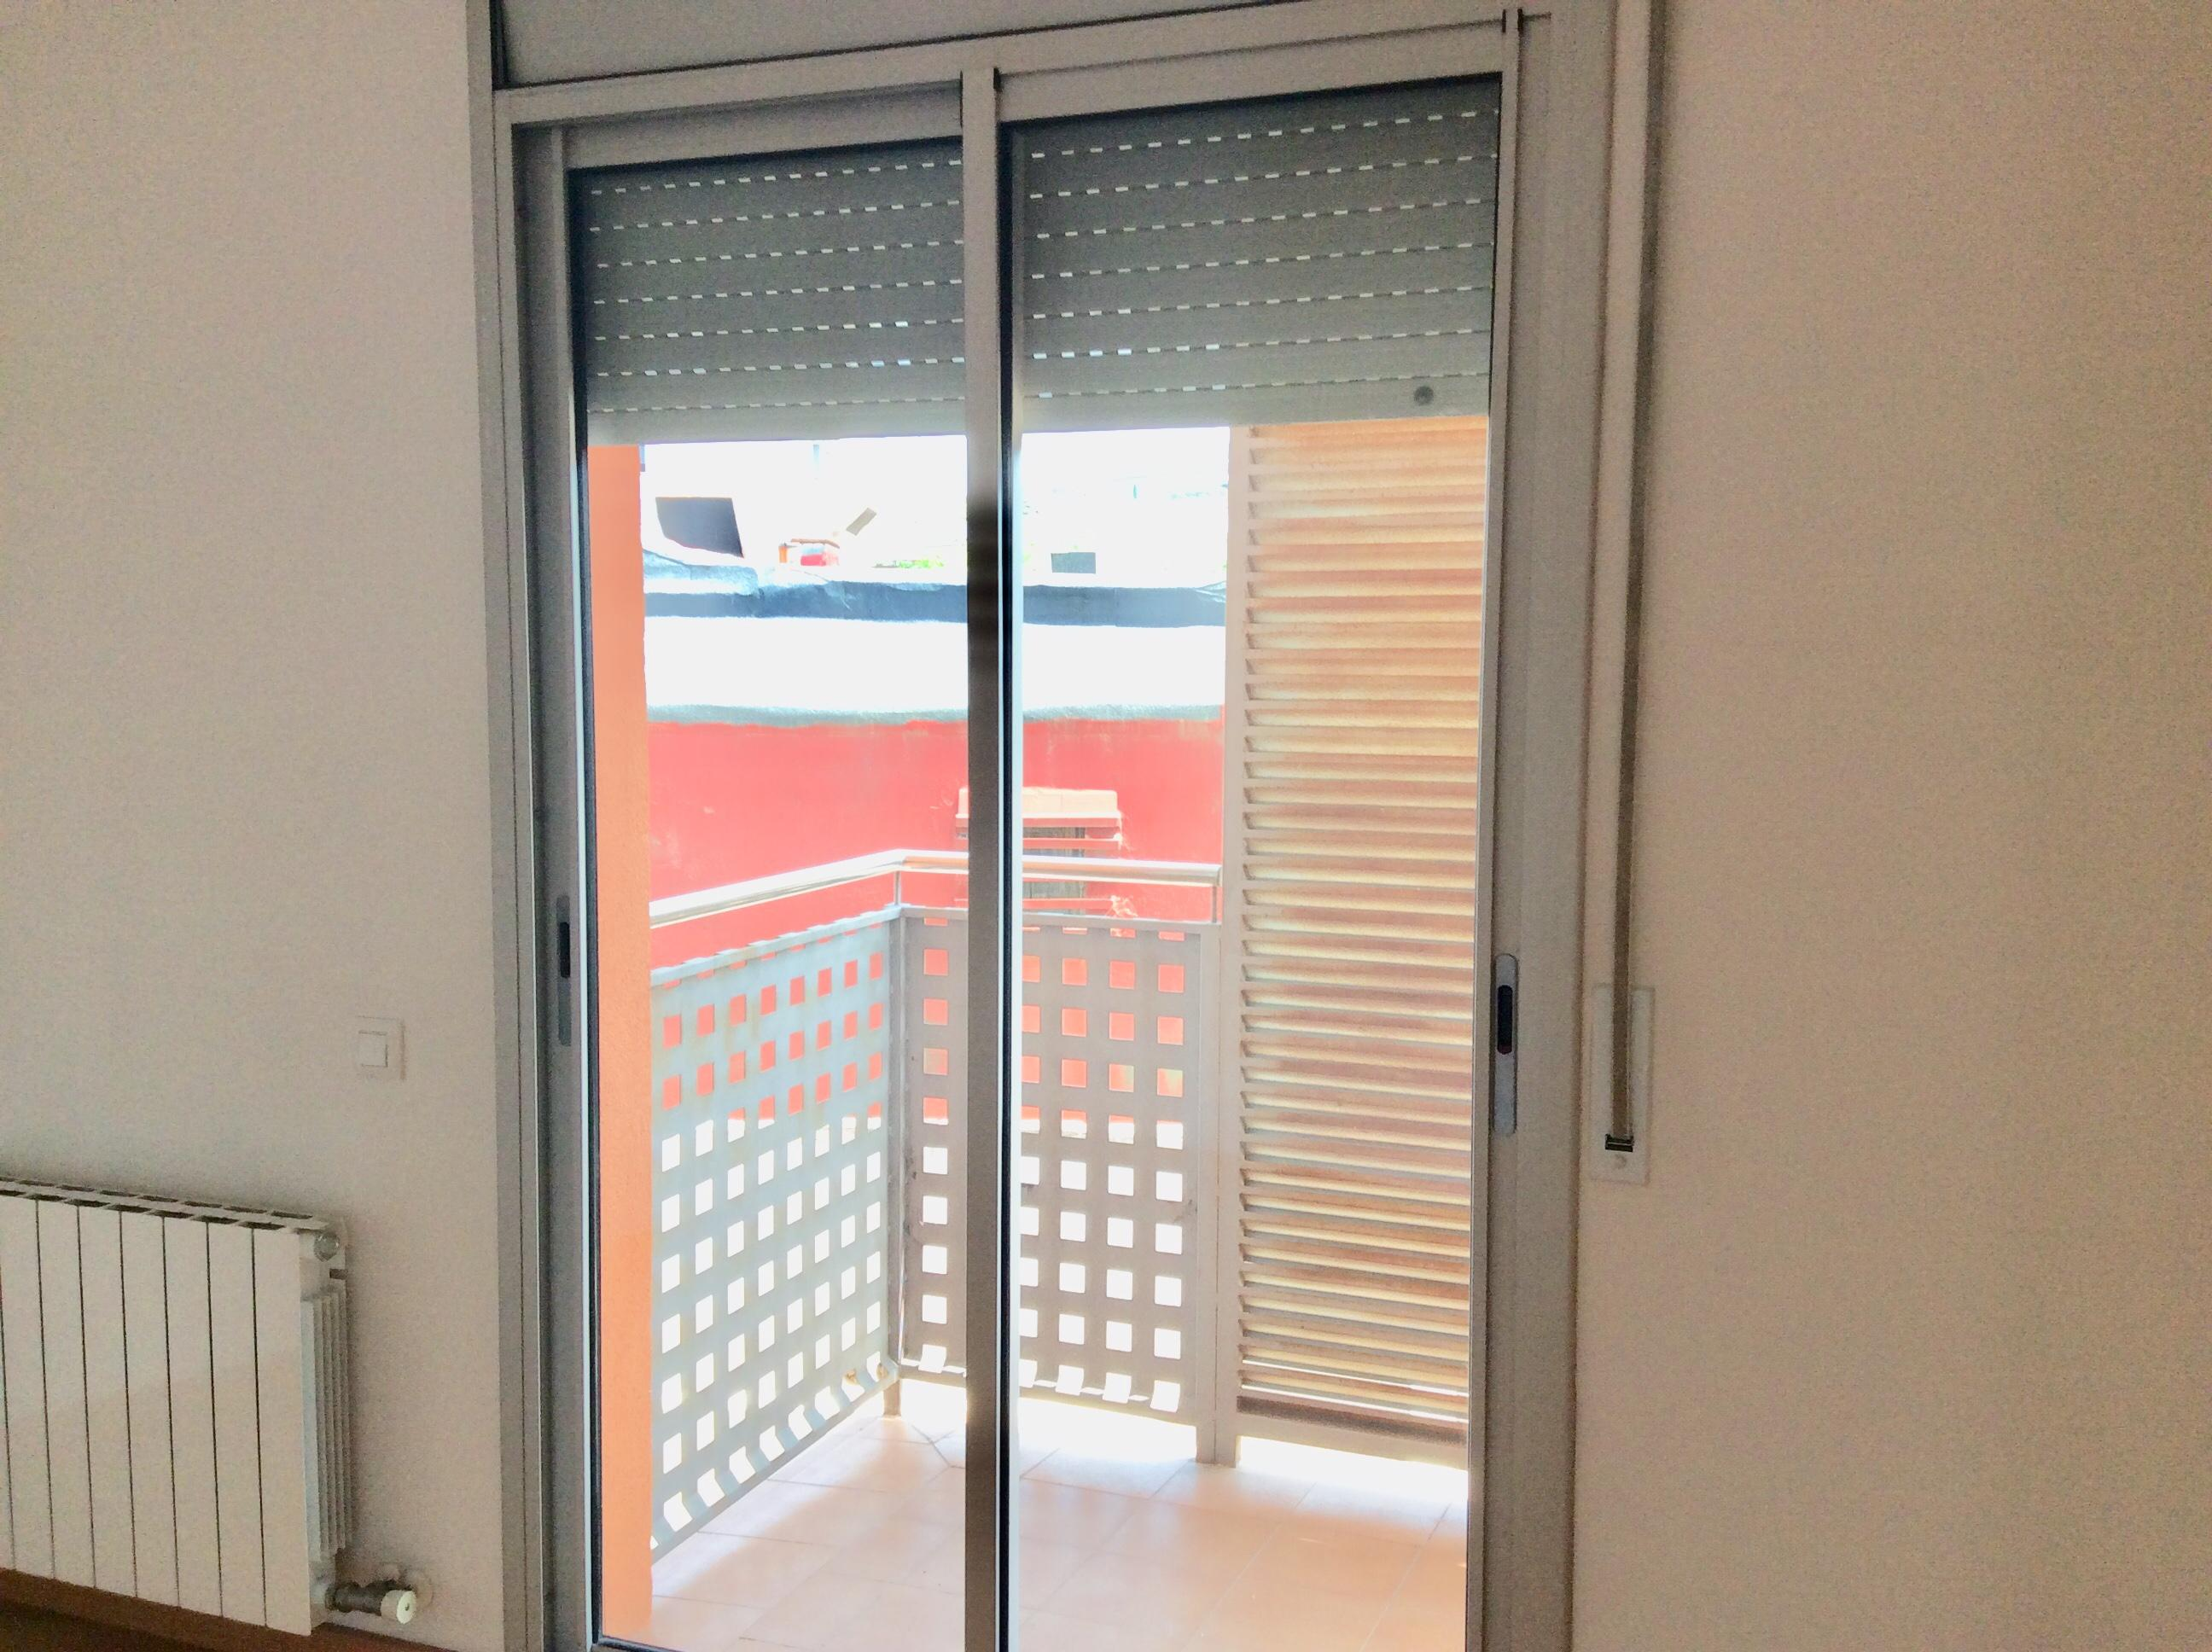 241109 Flat for sale in Sants-Montjuïc, La Marina de Port 24